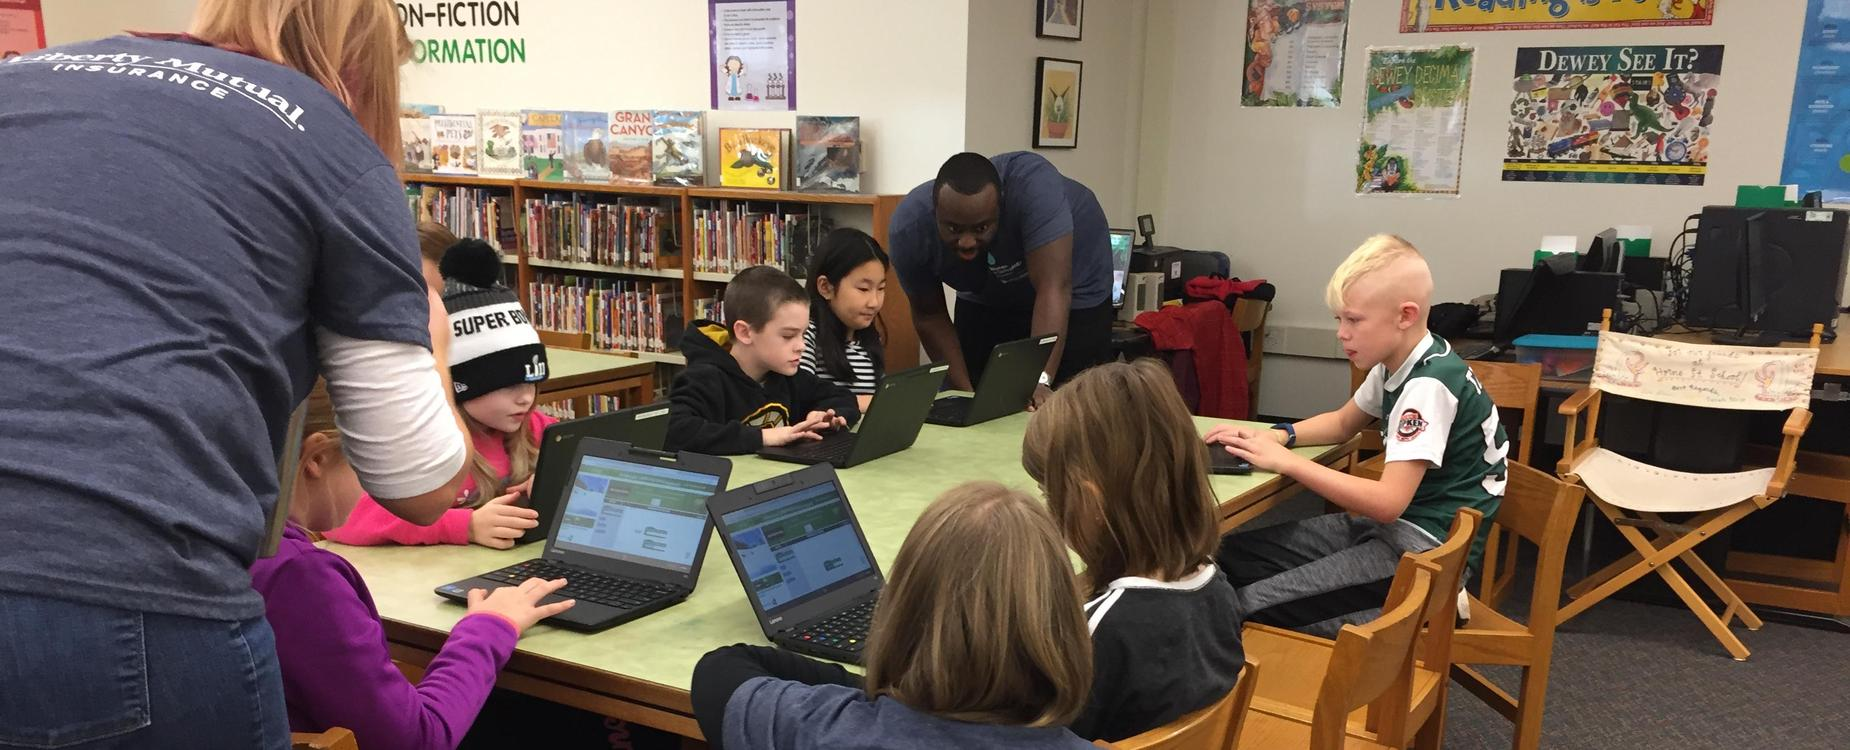 Hour of Code with Liberty Mutual